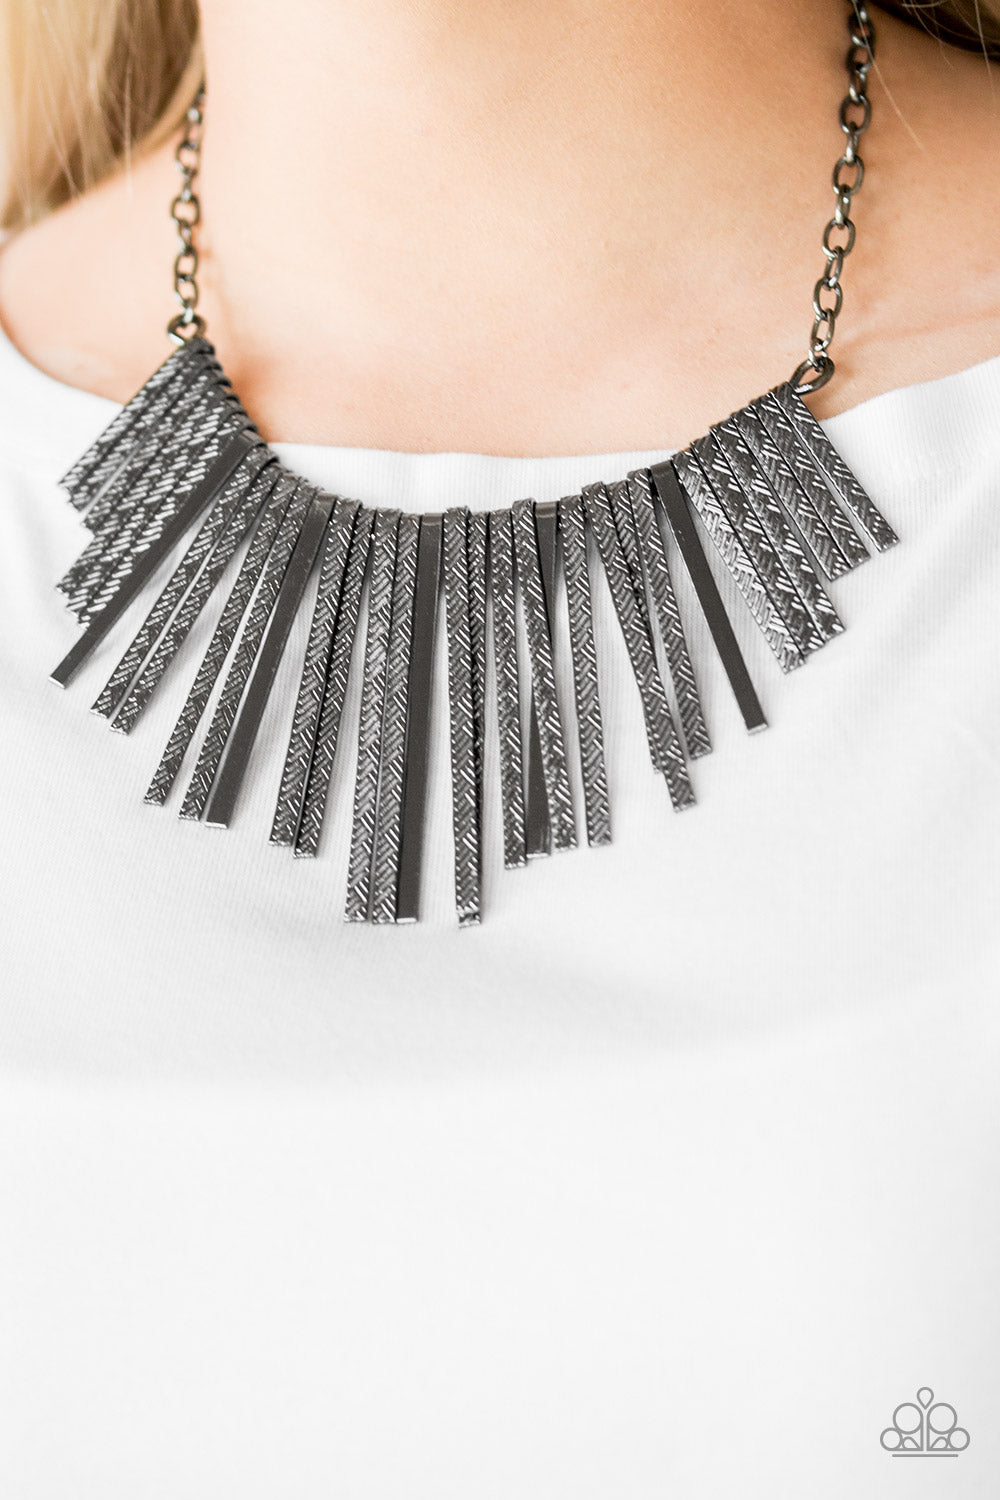 Welcome To The Pack - Black & Silver Necklace